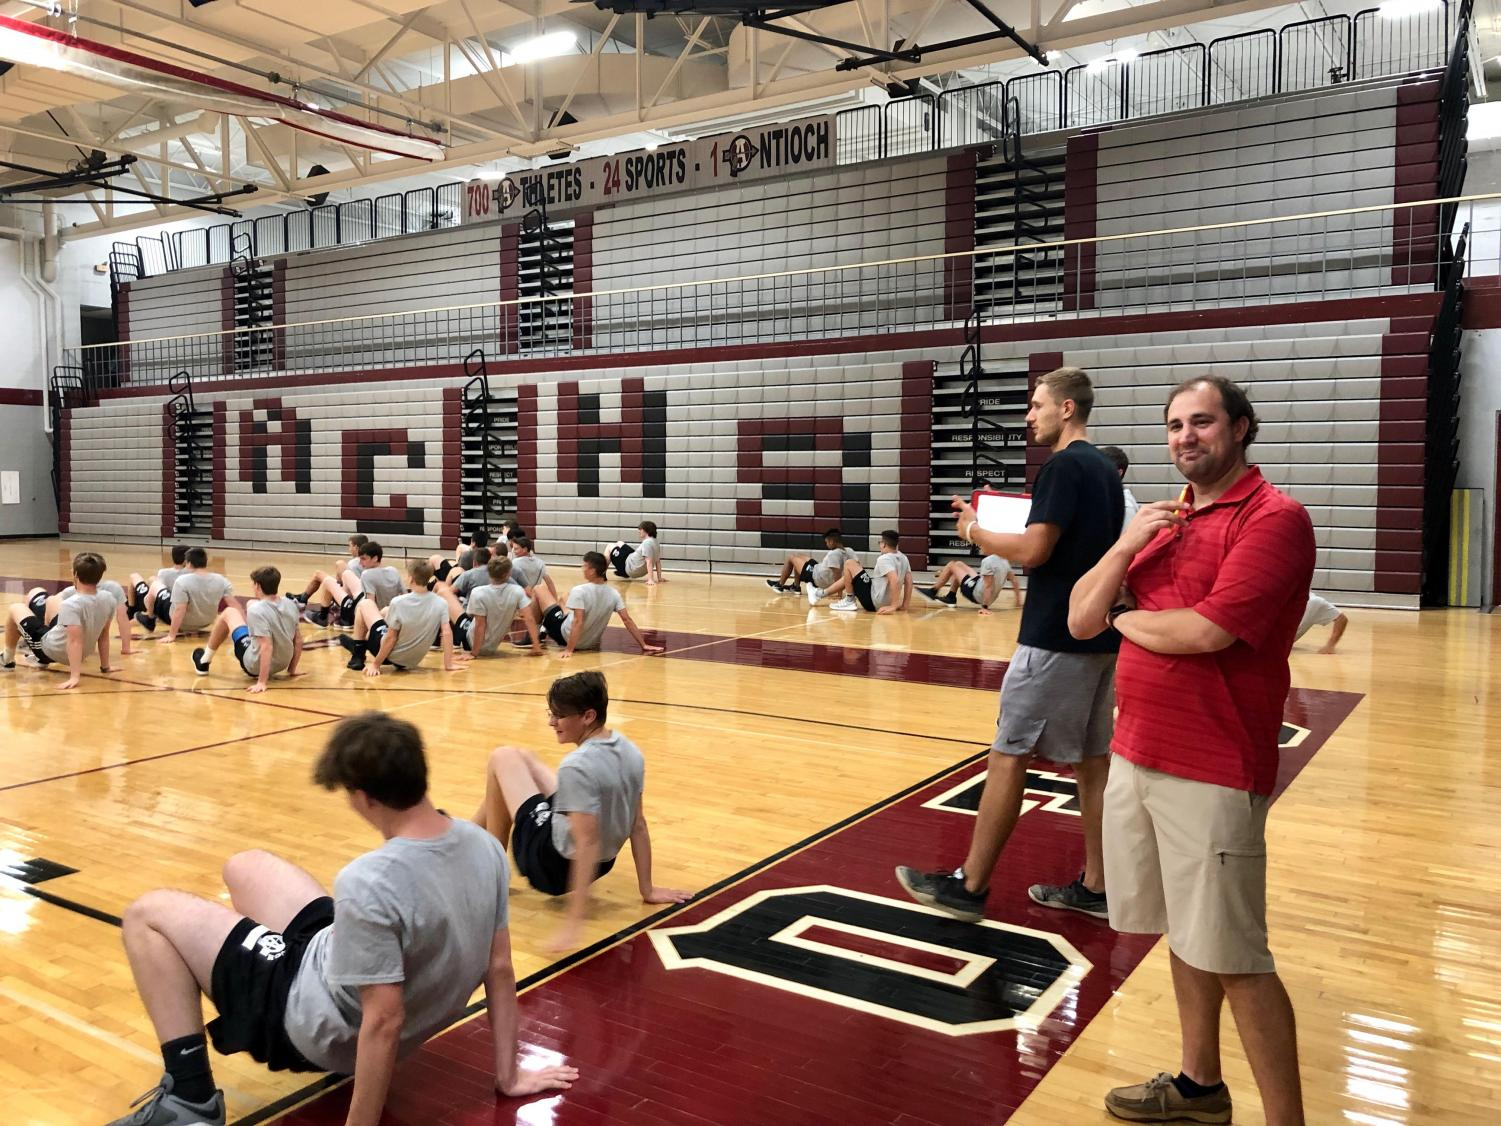 In his first semester of teaching at Antioch Community High School, Bryn Nottoli supervises a 6th hour Boy's Physical Best class as they warm-up before their daily workout.